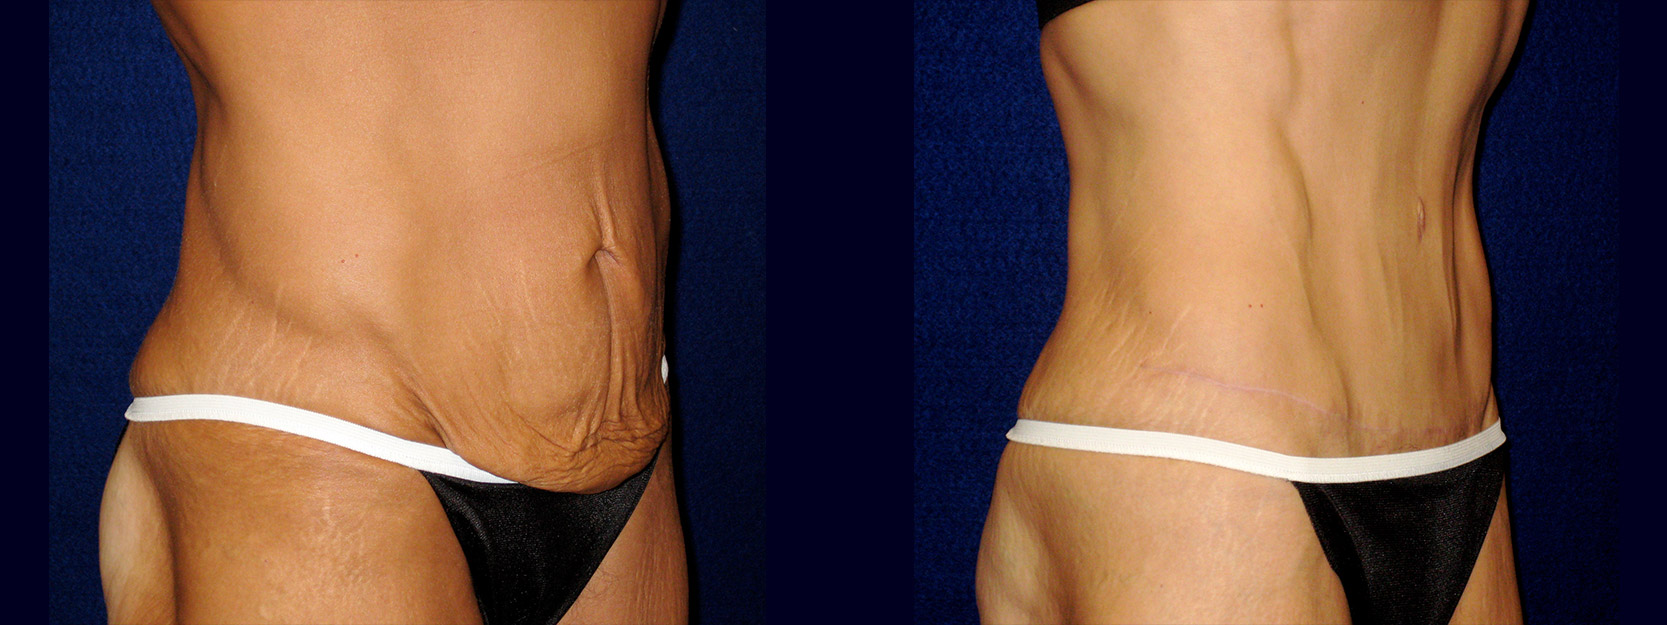 Right 3/4 View - Tummy Tuck After Massive Weight Loss